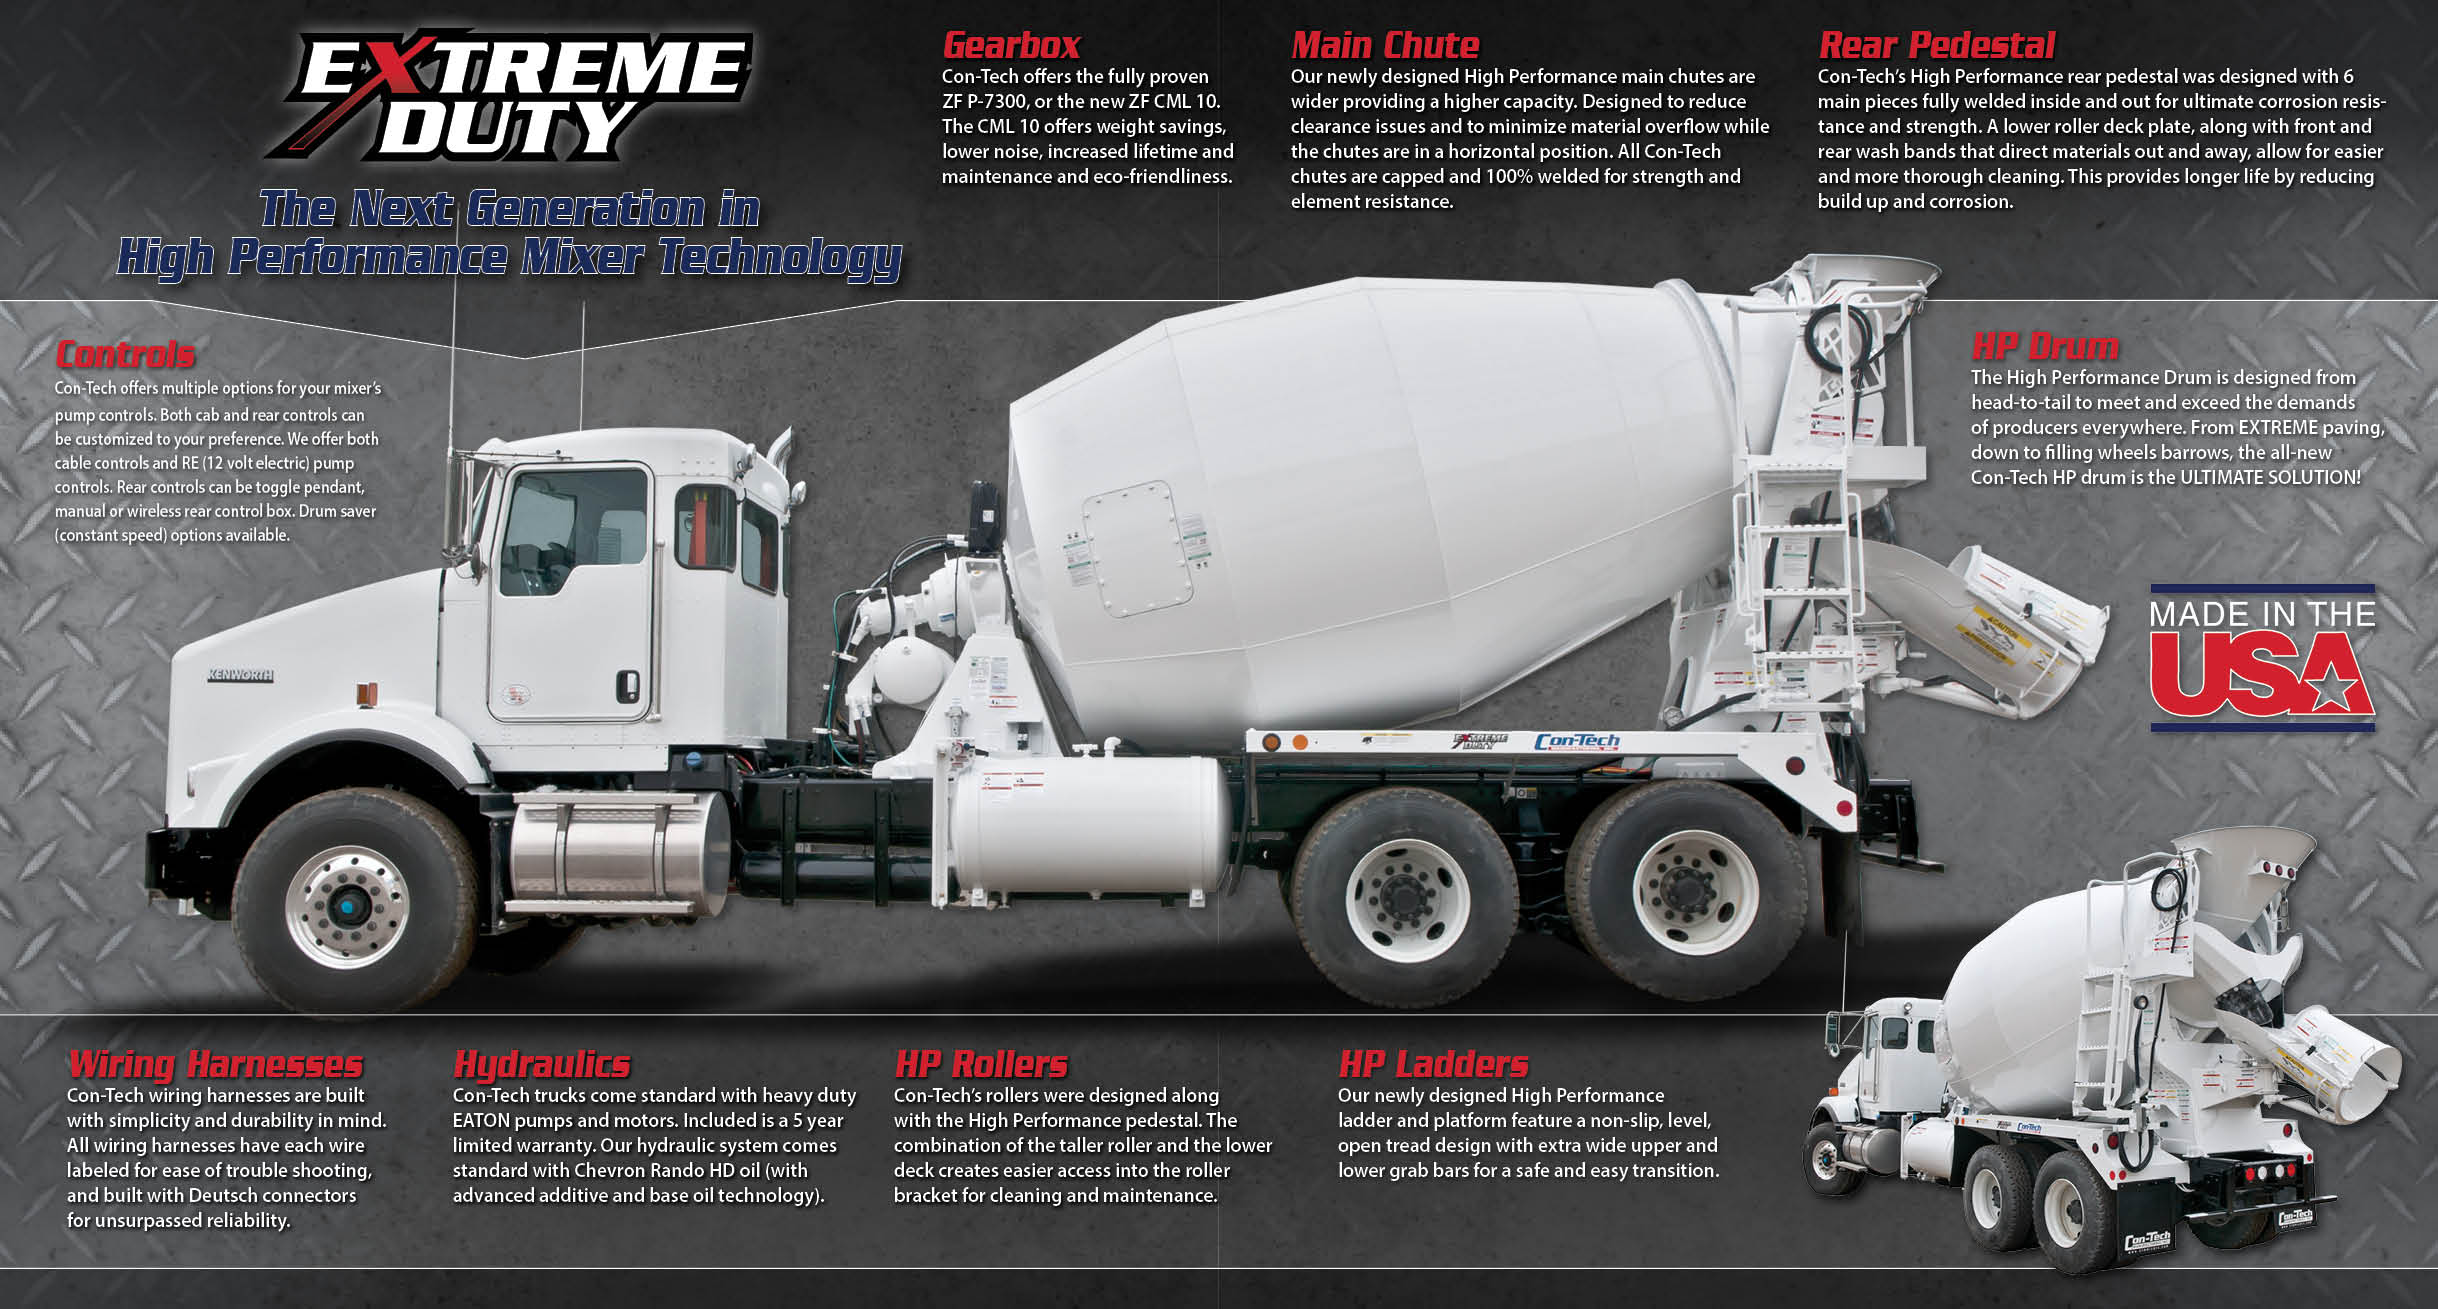 Extreme Duty: The next generation in high performance mixer